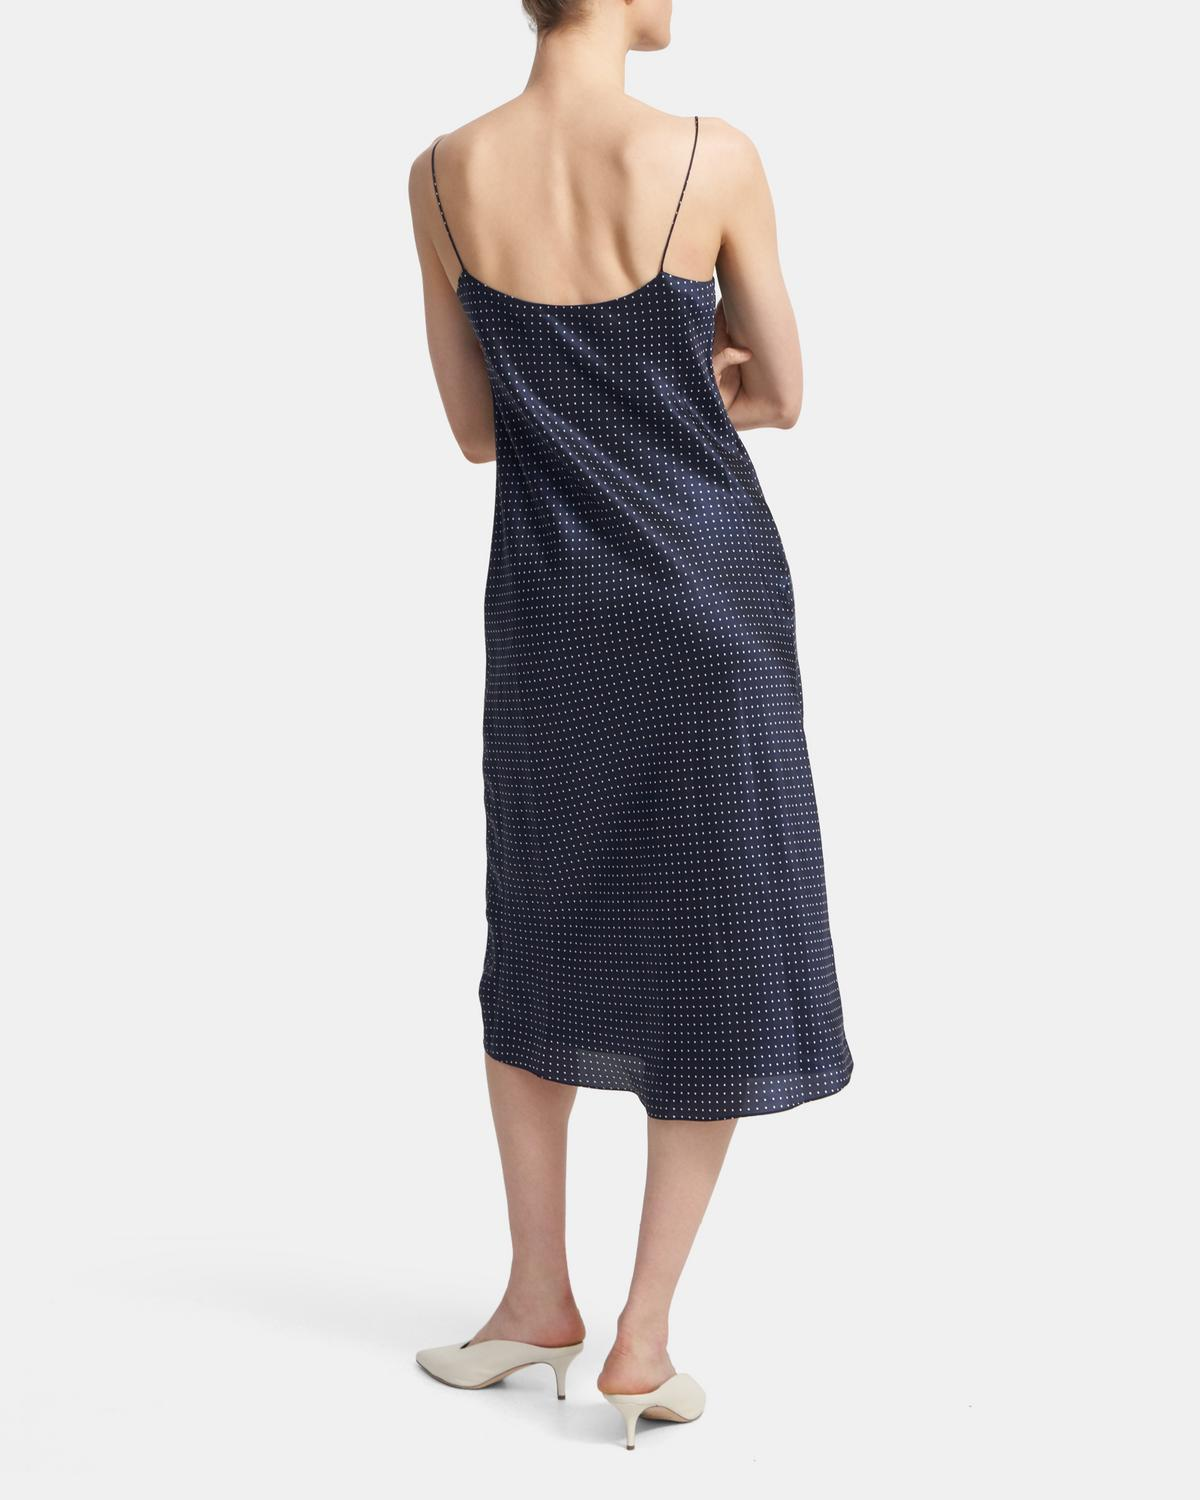 Slip Dress in Polka Dot Cupro